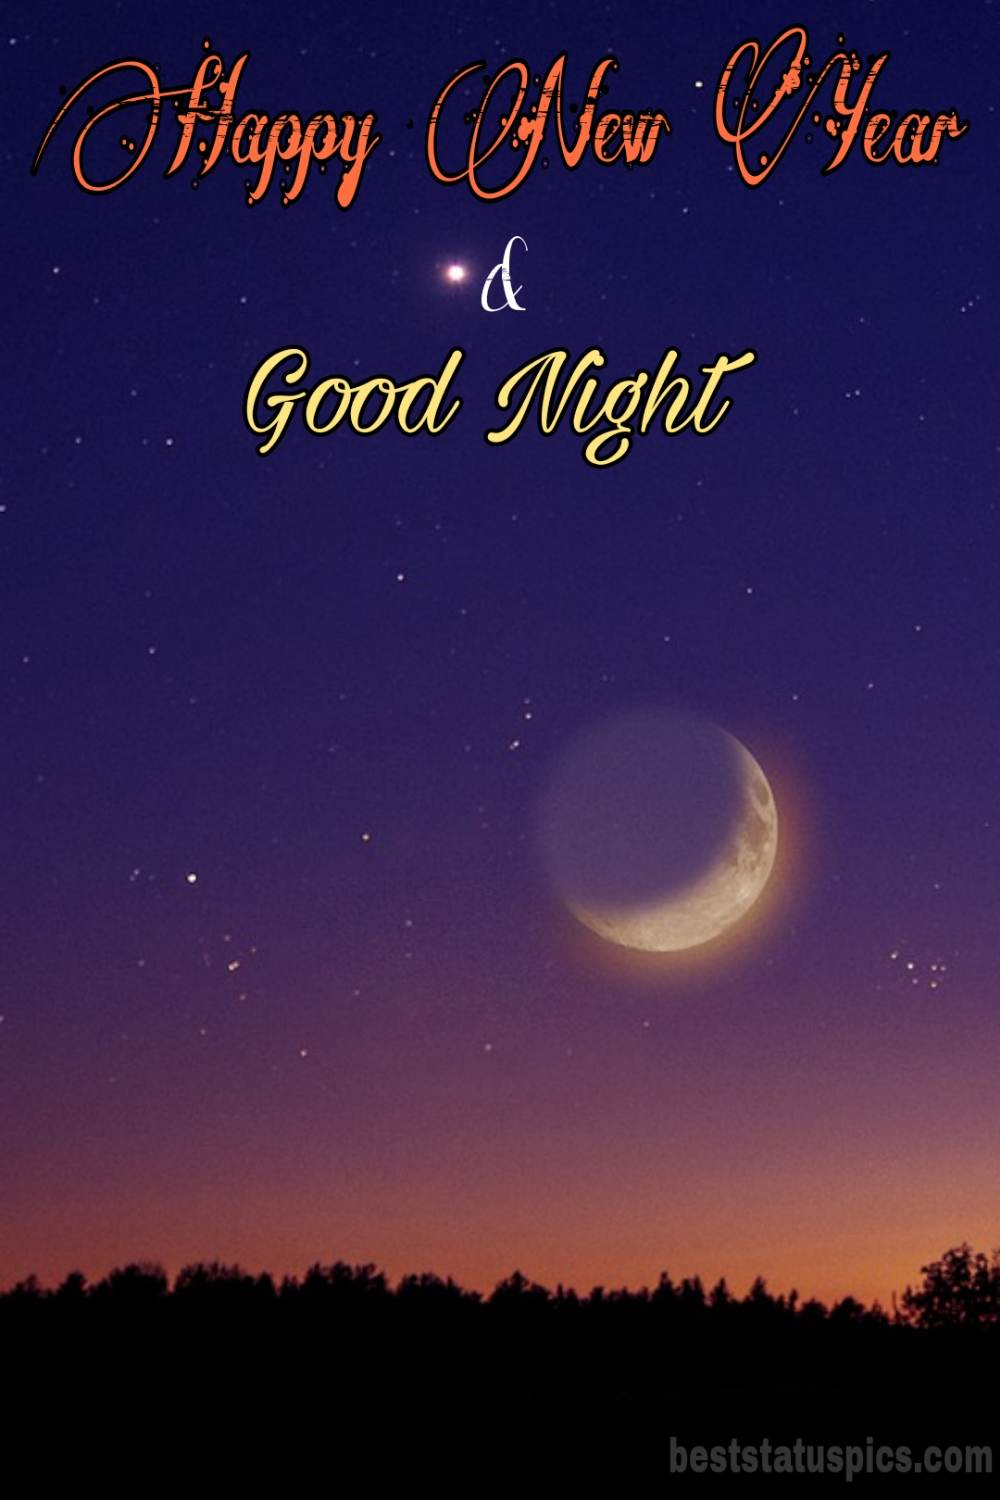 Happy new year 2022 and Good night HD images with moon and night sky for friends and lover